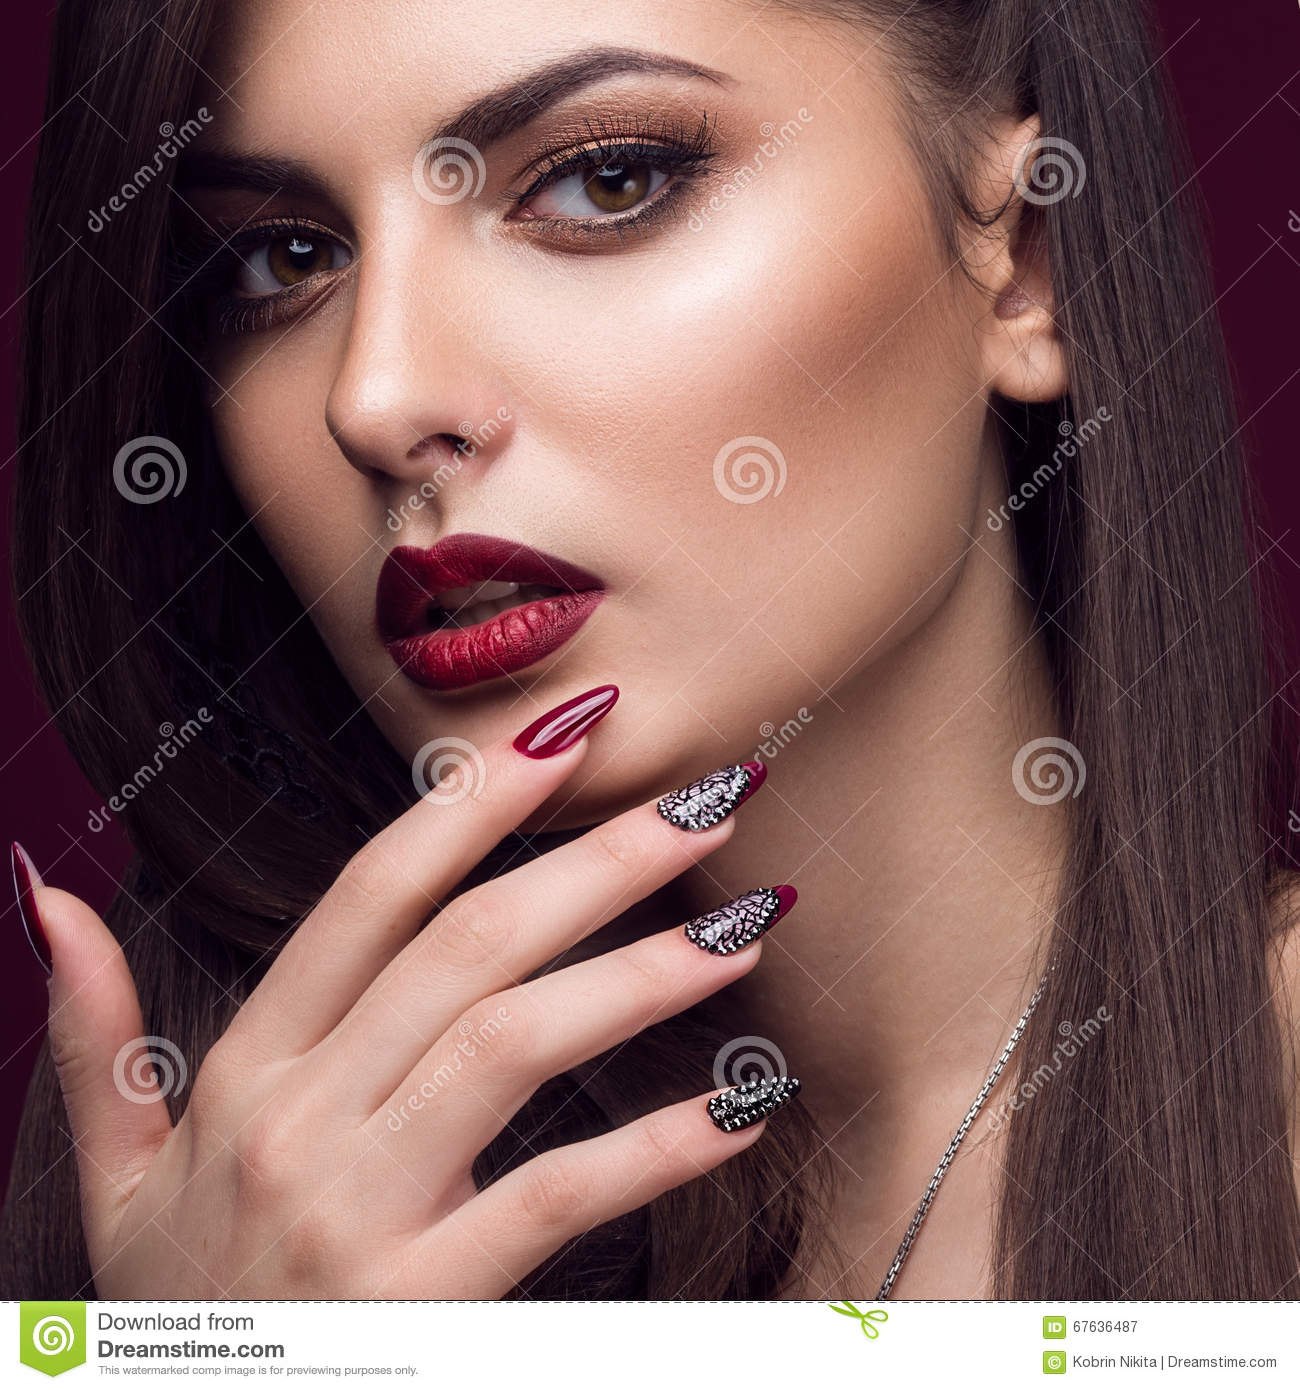 Lipstick Pretty Girl Faces: Pretty Girl With Unusual Hairstyle, Bright Makeup, Red